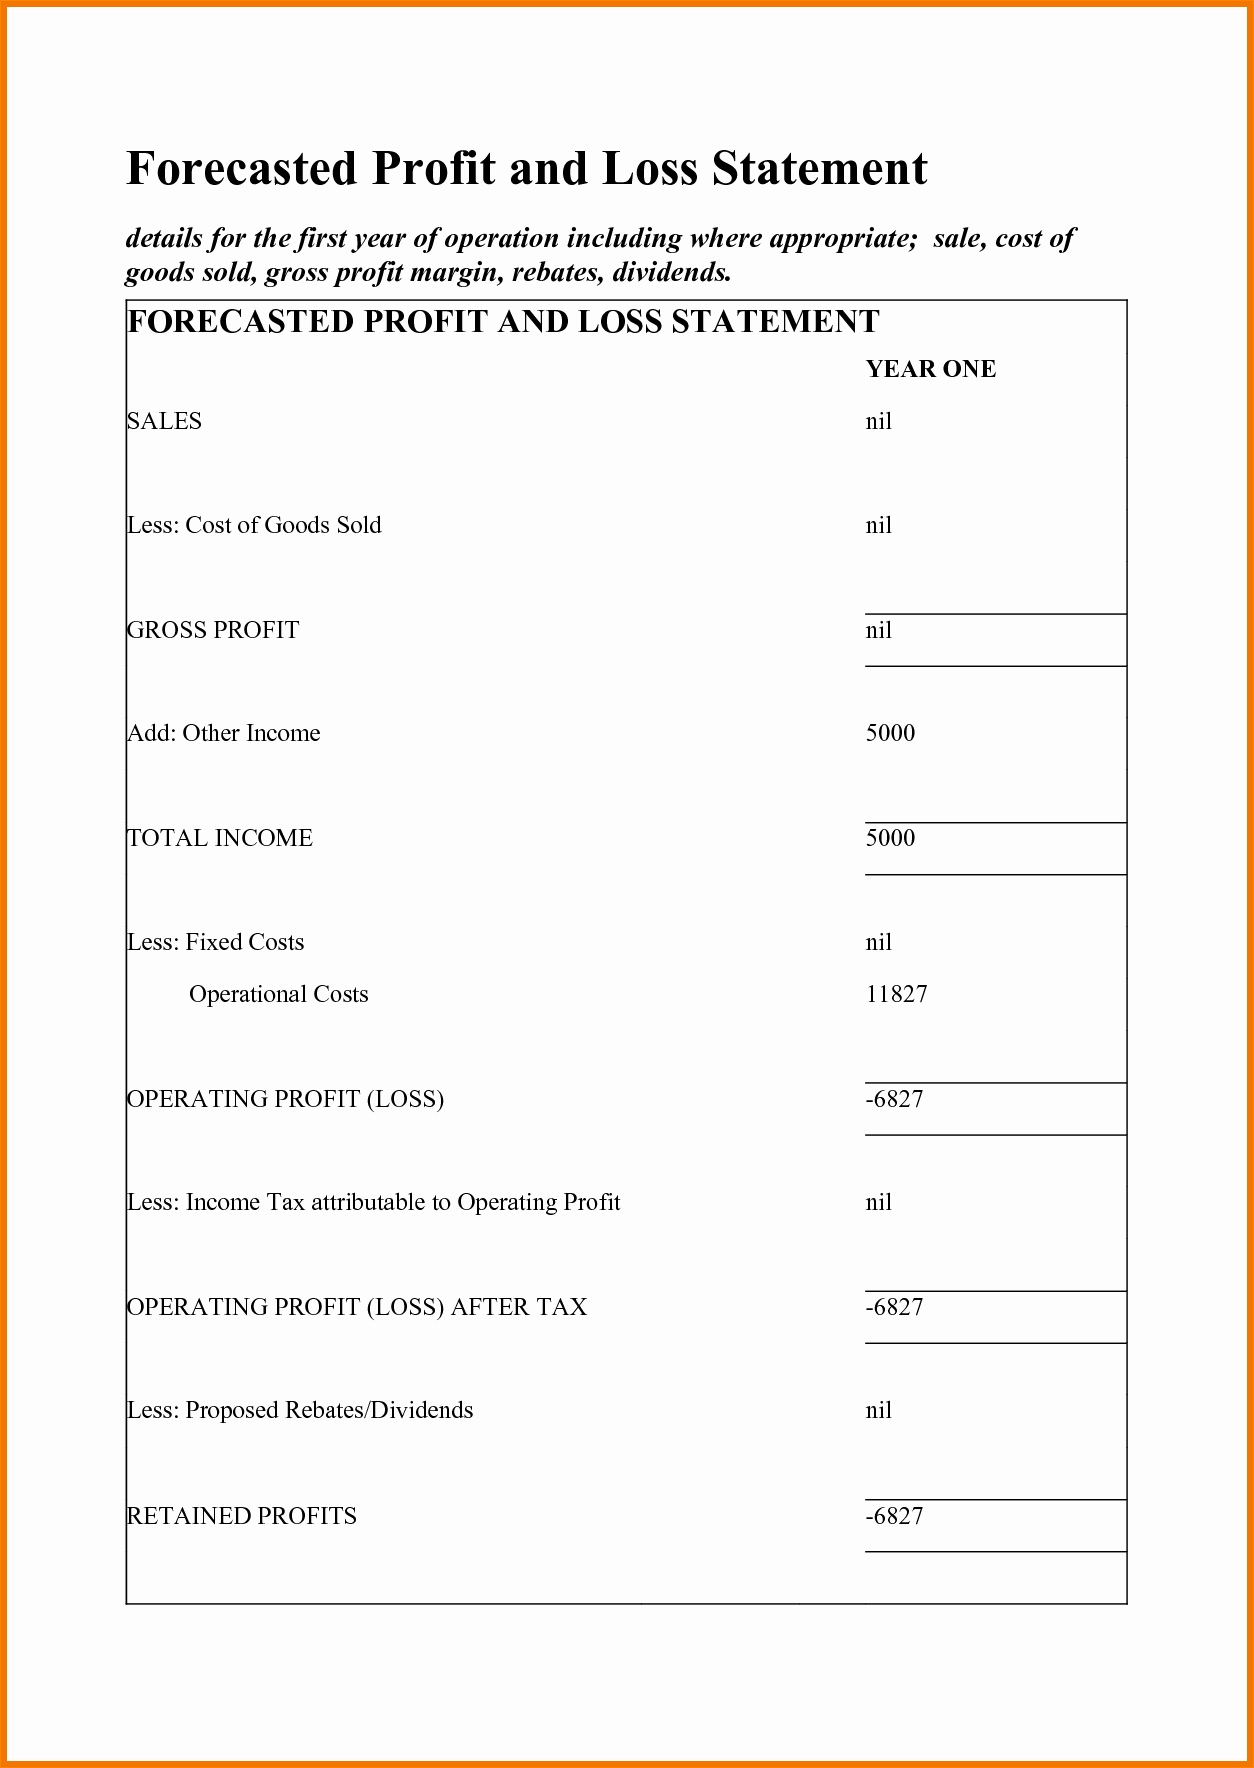 Easy Profit and Loss Template Lovely Simple Profit and Loss Portablegasgrillweber